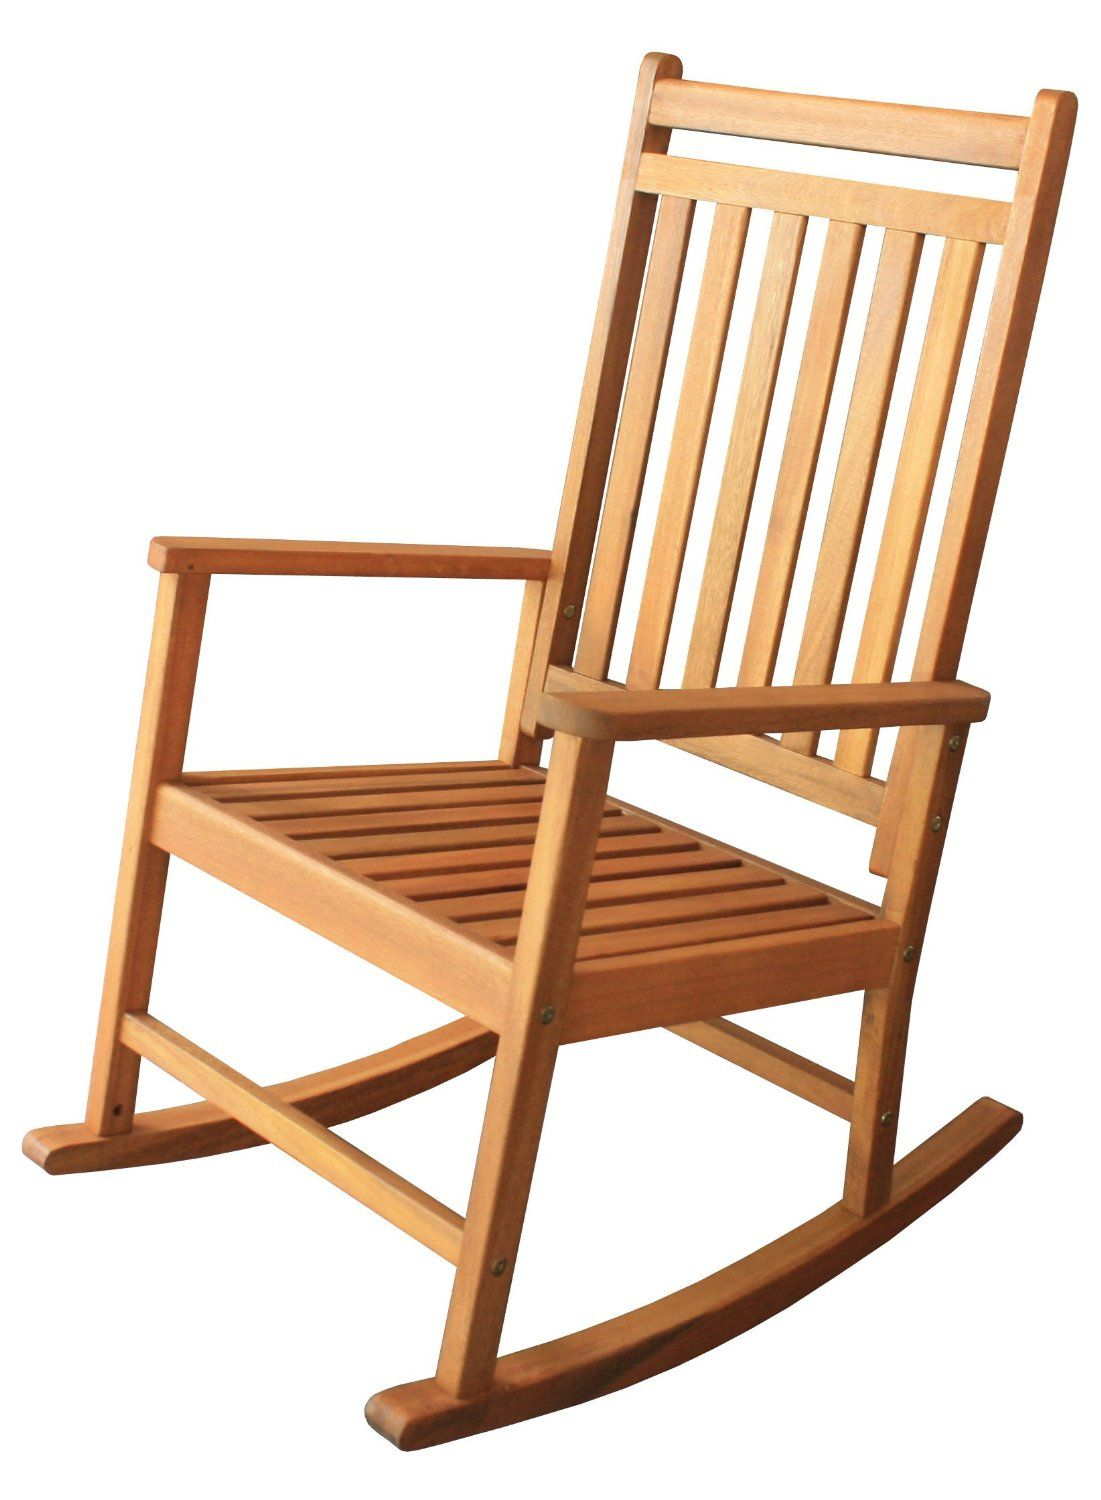 Simple Wooden Rocking Chair Simple Wooden Rocking Chairs Chair